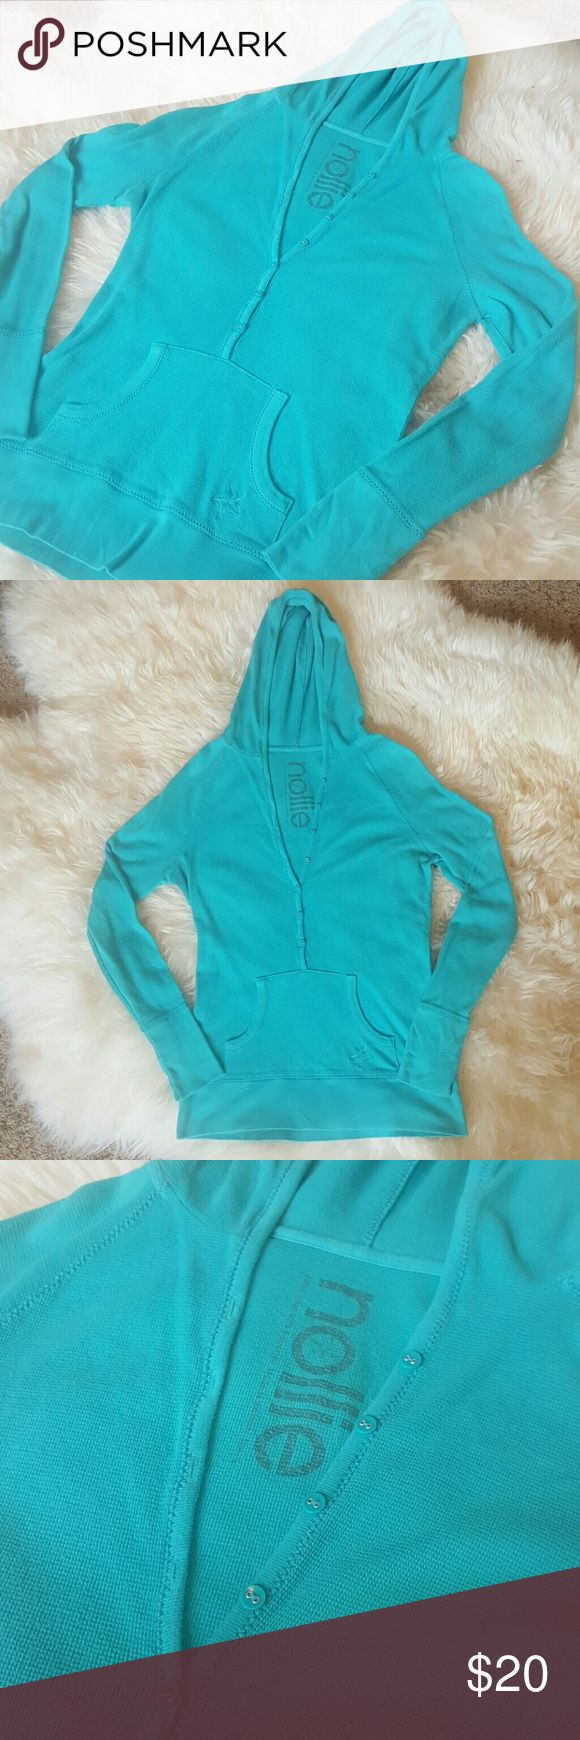 Women's Large Nollie Long Sleeve Henley Women's Nollie Long Sleeve Hooded Henley - Partial Button Up - Turquoise - Front Pocket - Size Large Nollie Tops Tees - Long Sleeve